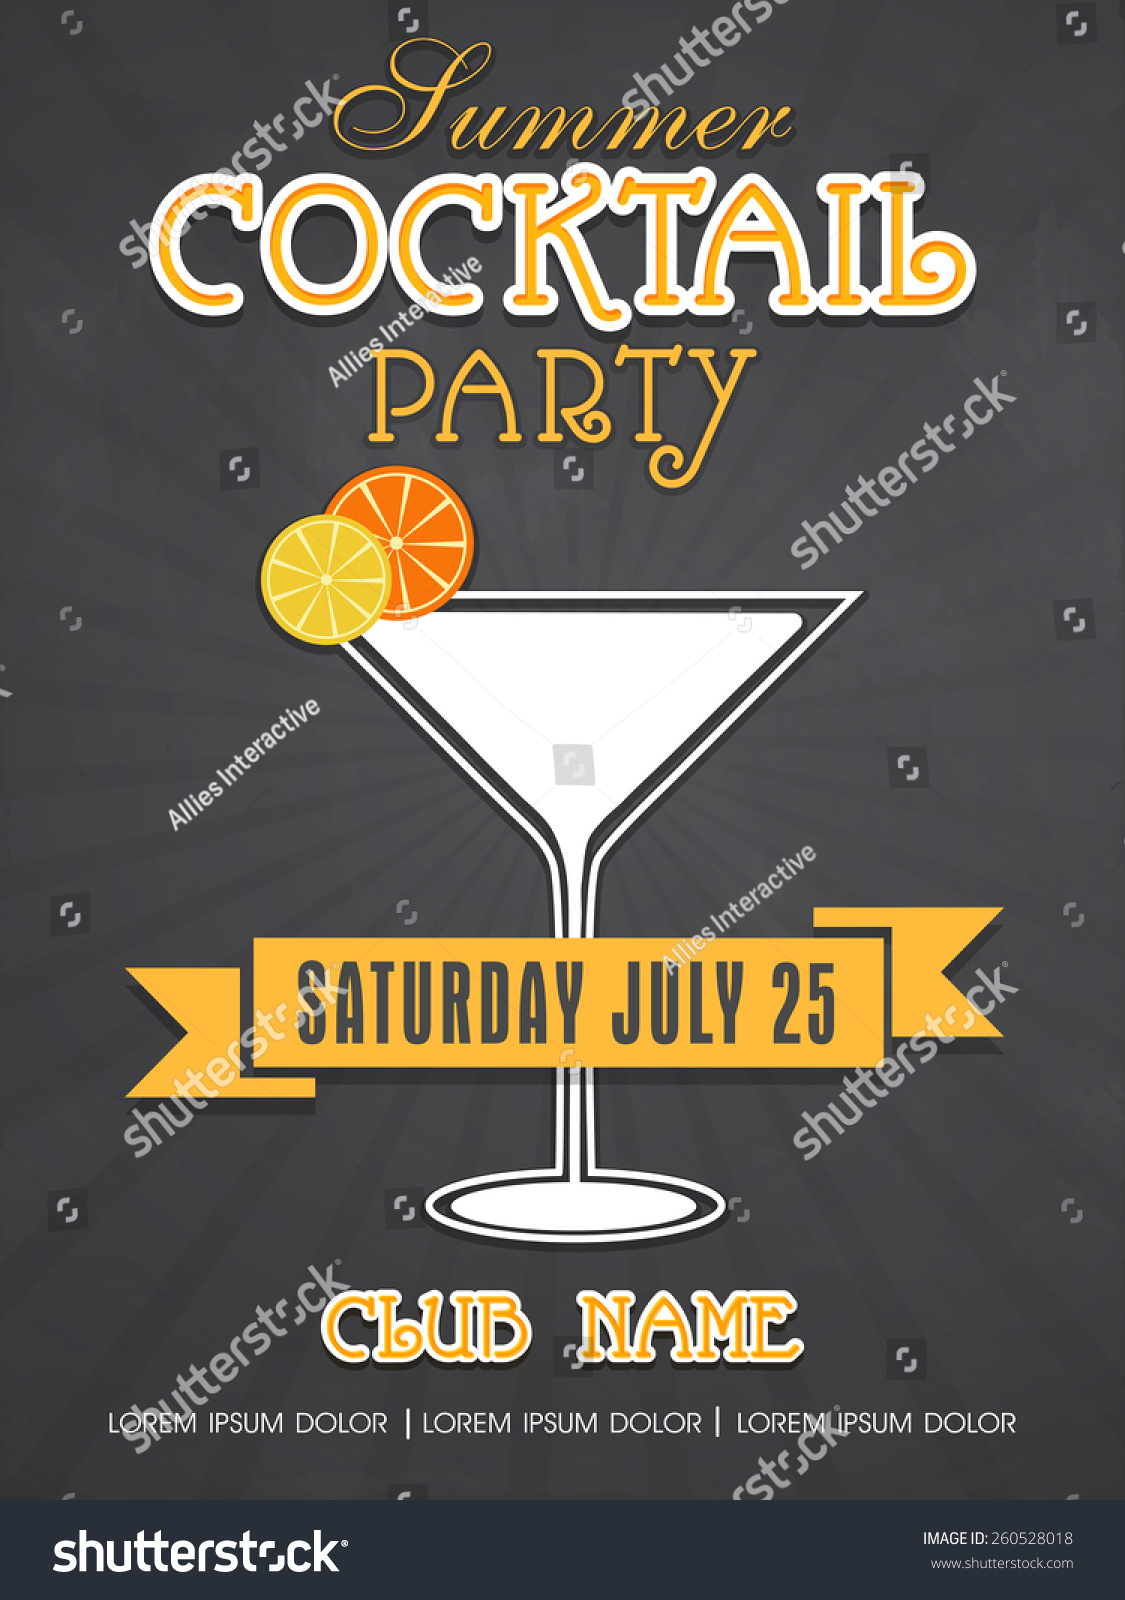 Stylish Summer Cocktail Party Invitation Card Vector – Party Invitation Card Design